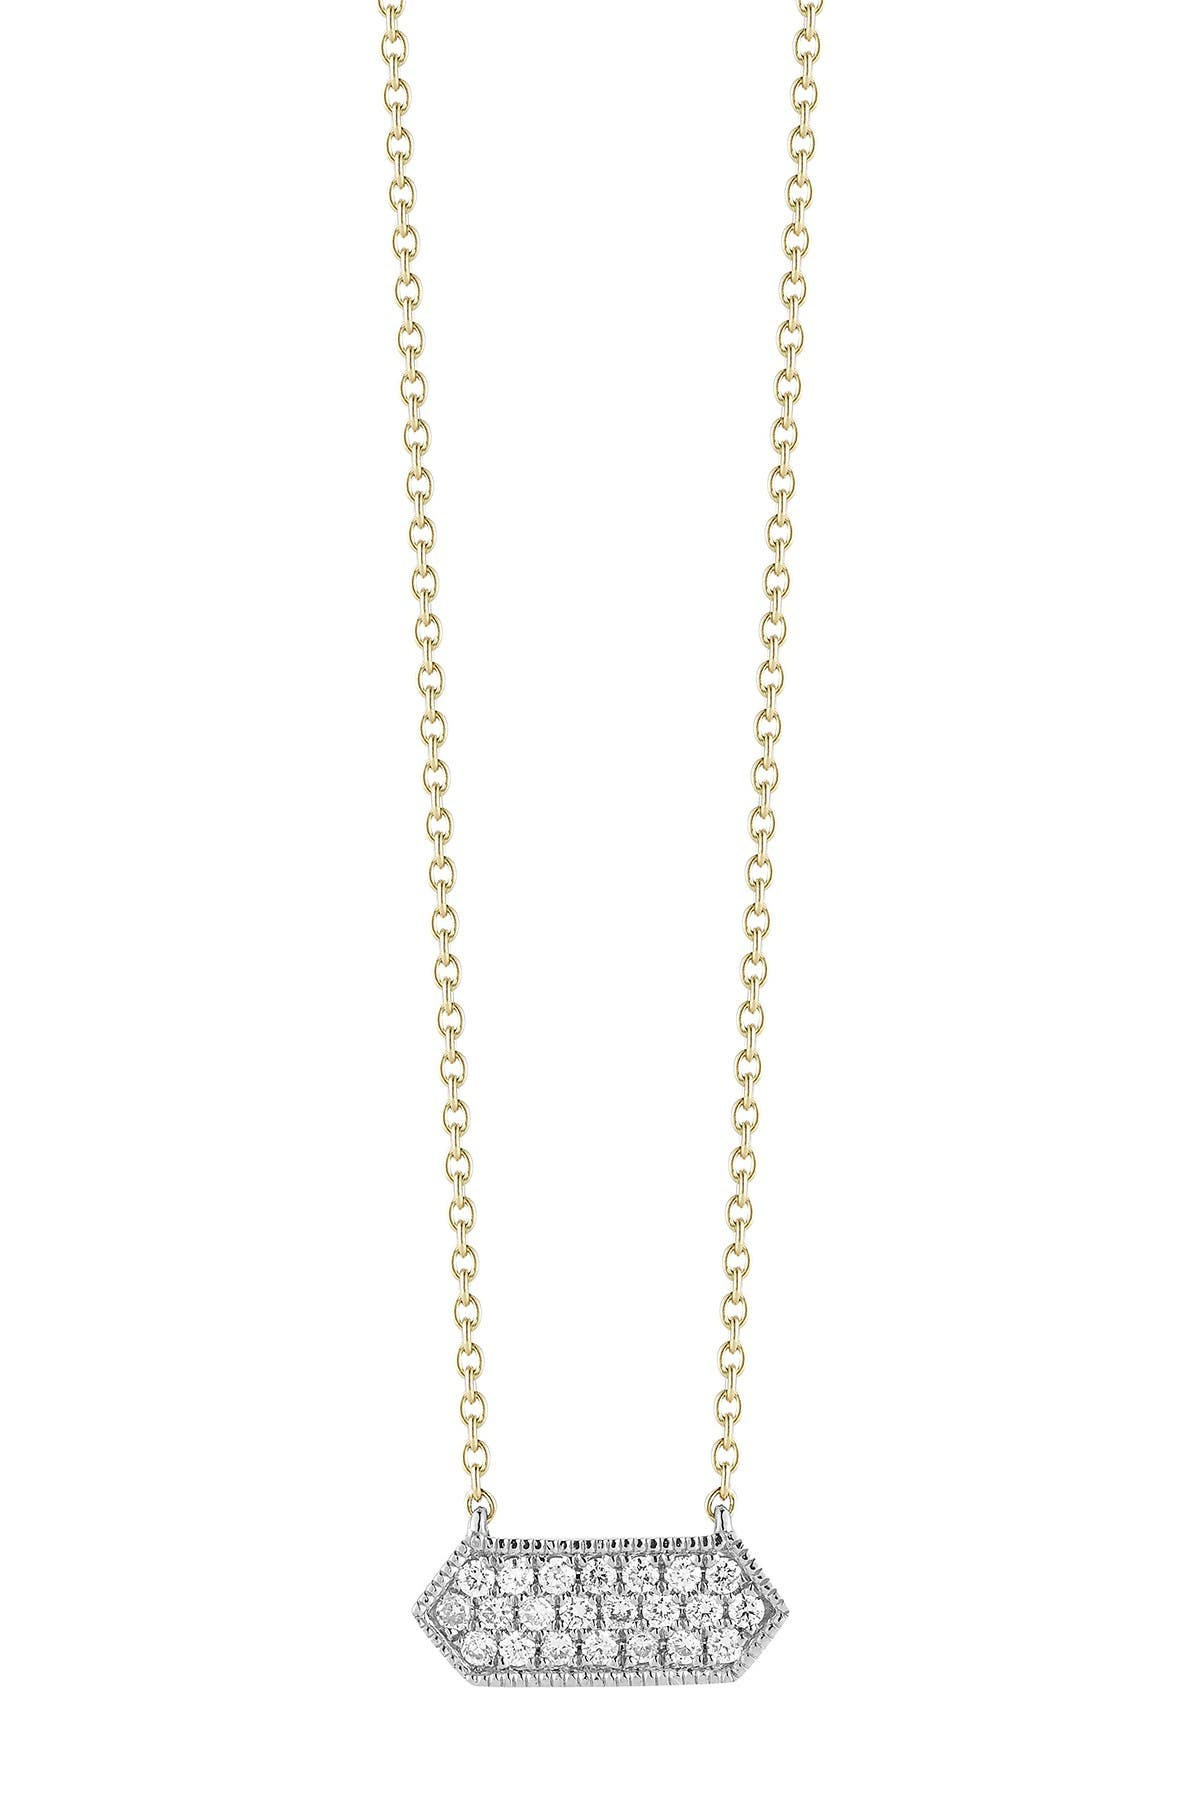 Image of DANA REBECCA 14K Yellow Gold Diamond Accented Cynthia Rose Necklace - 0.13 ctw